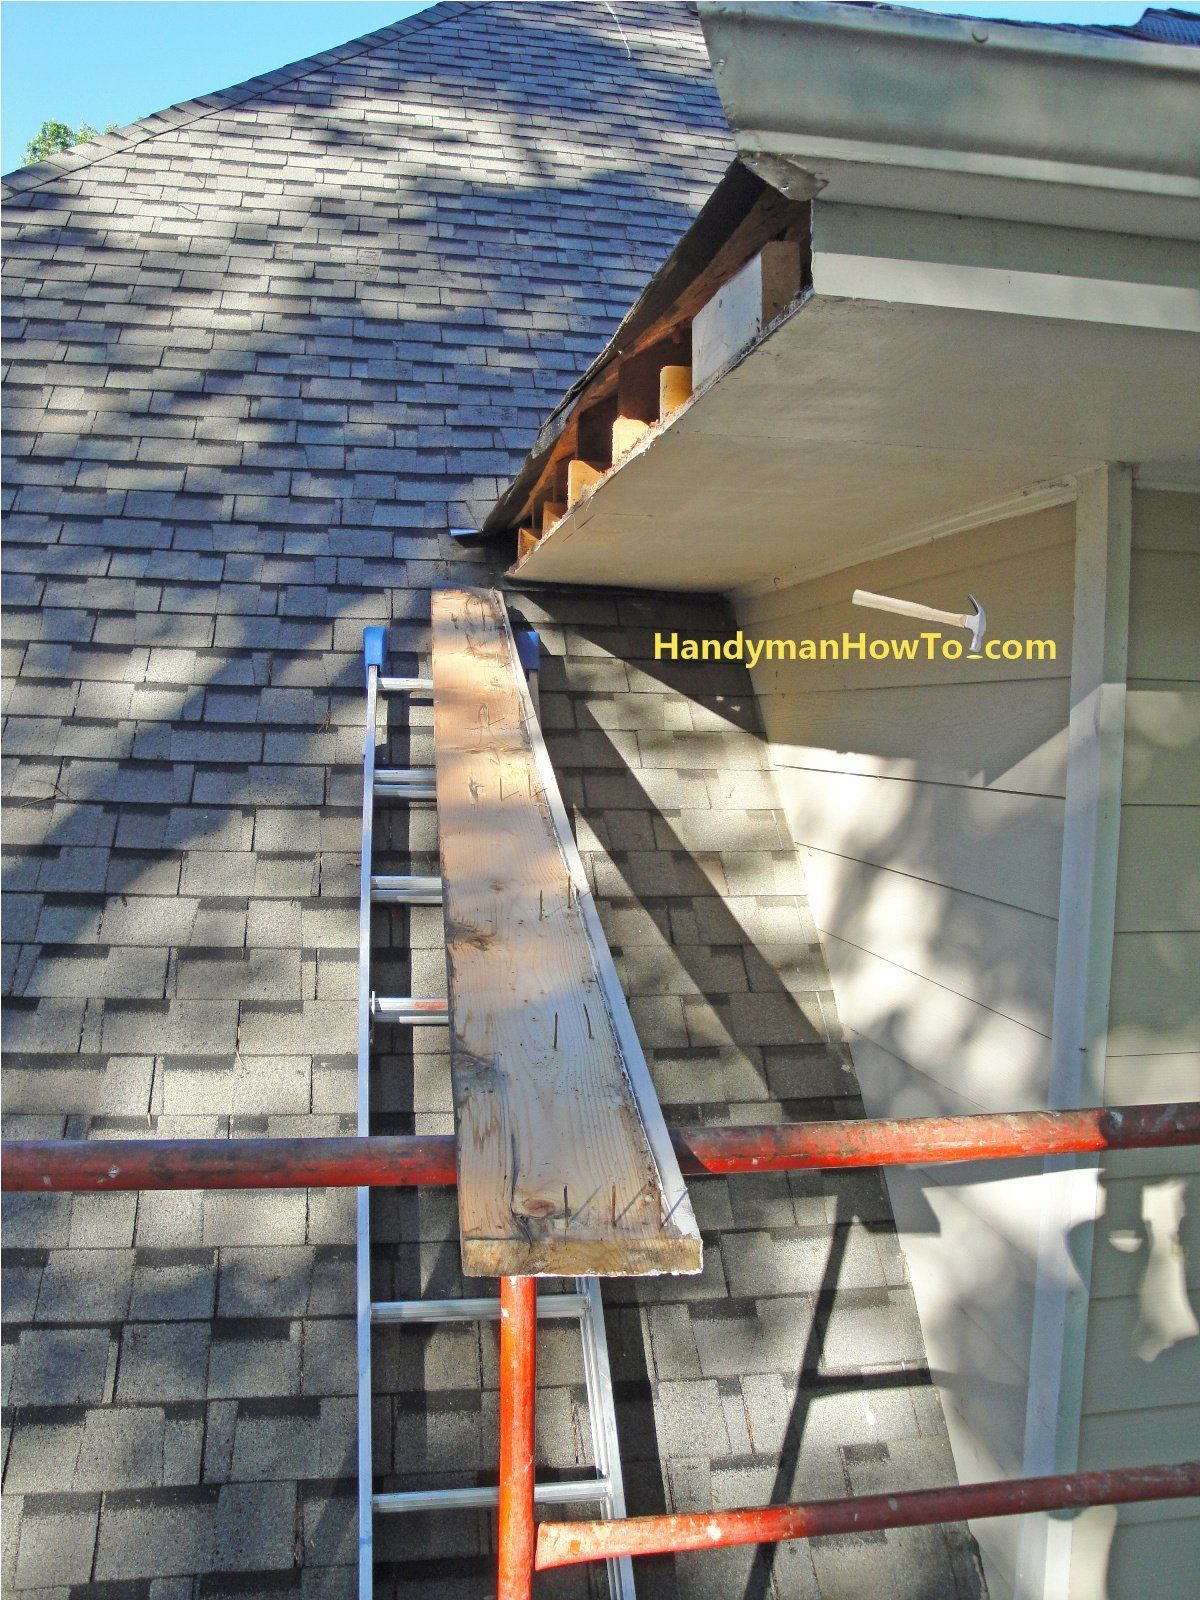 How To Repair Rotted Soffit And Fascia Photo Tutorial Install A New Plywood Soffit And Pvc Fascia Board Diy Home Repair Fascia Home Maintenance